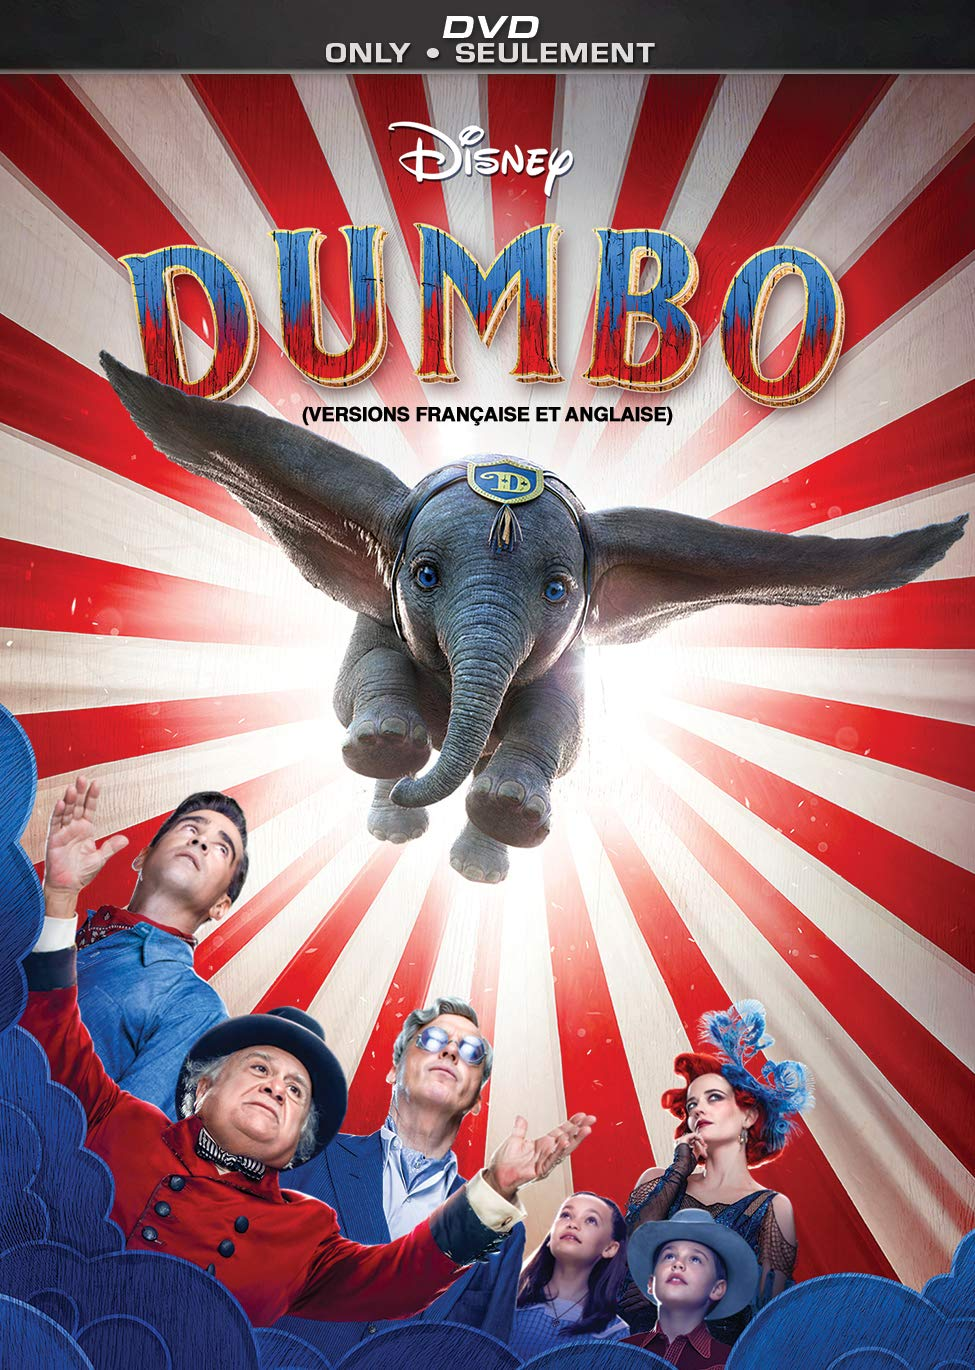 Dumbo, now available on Blu-ray and DVD